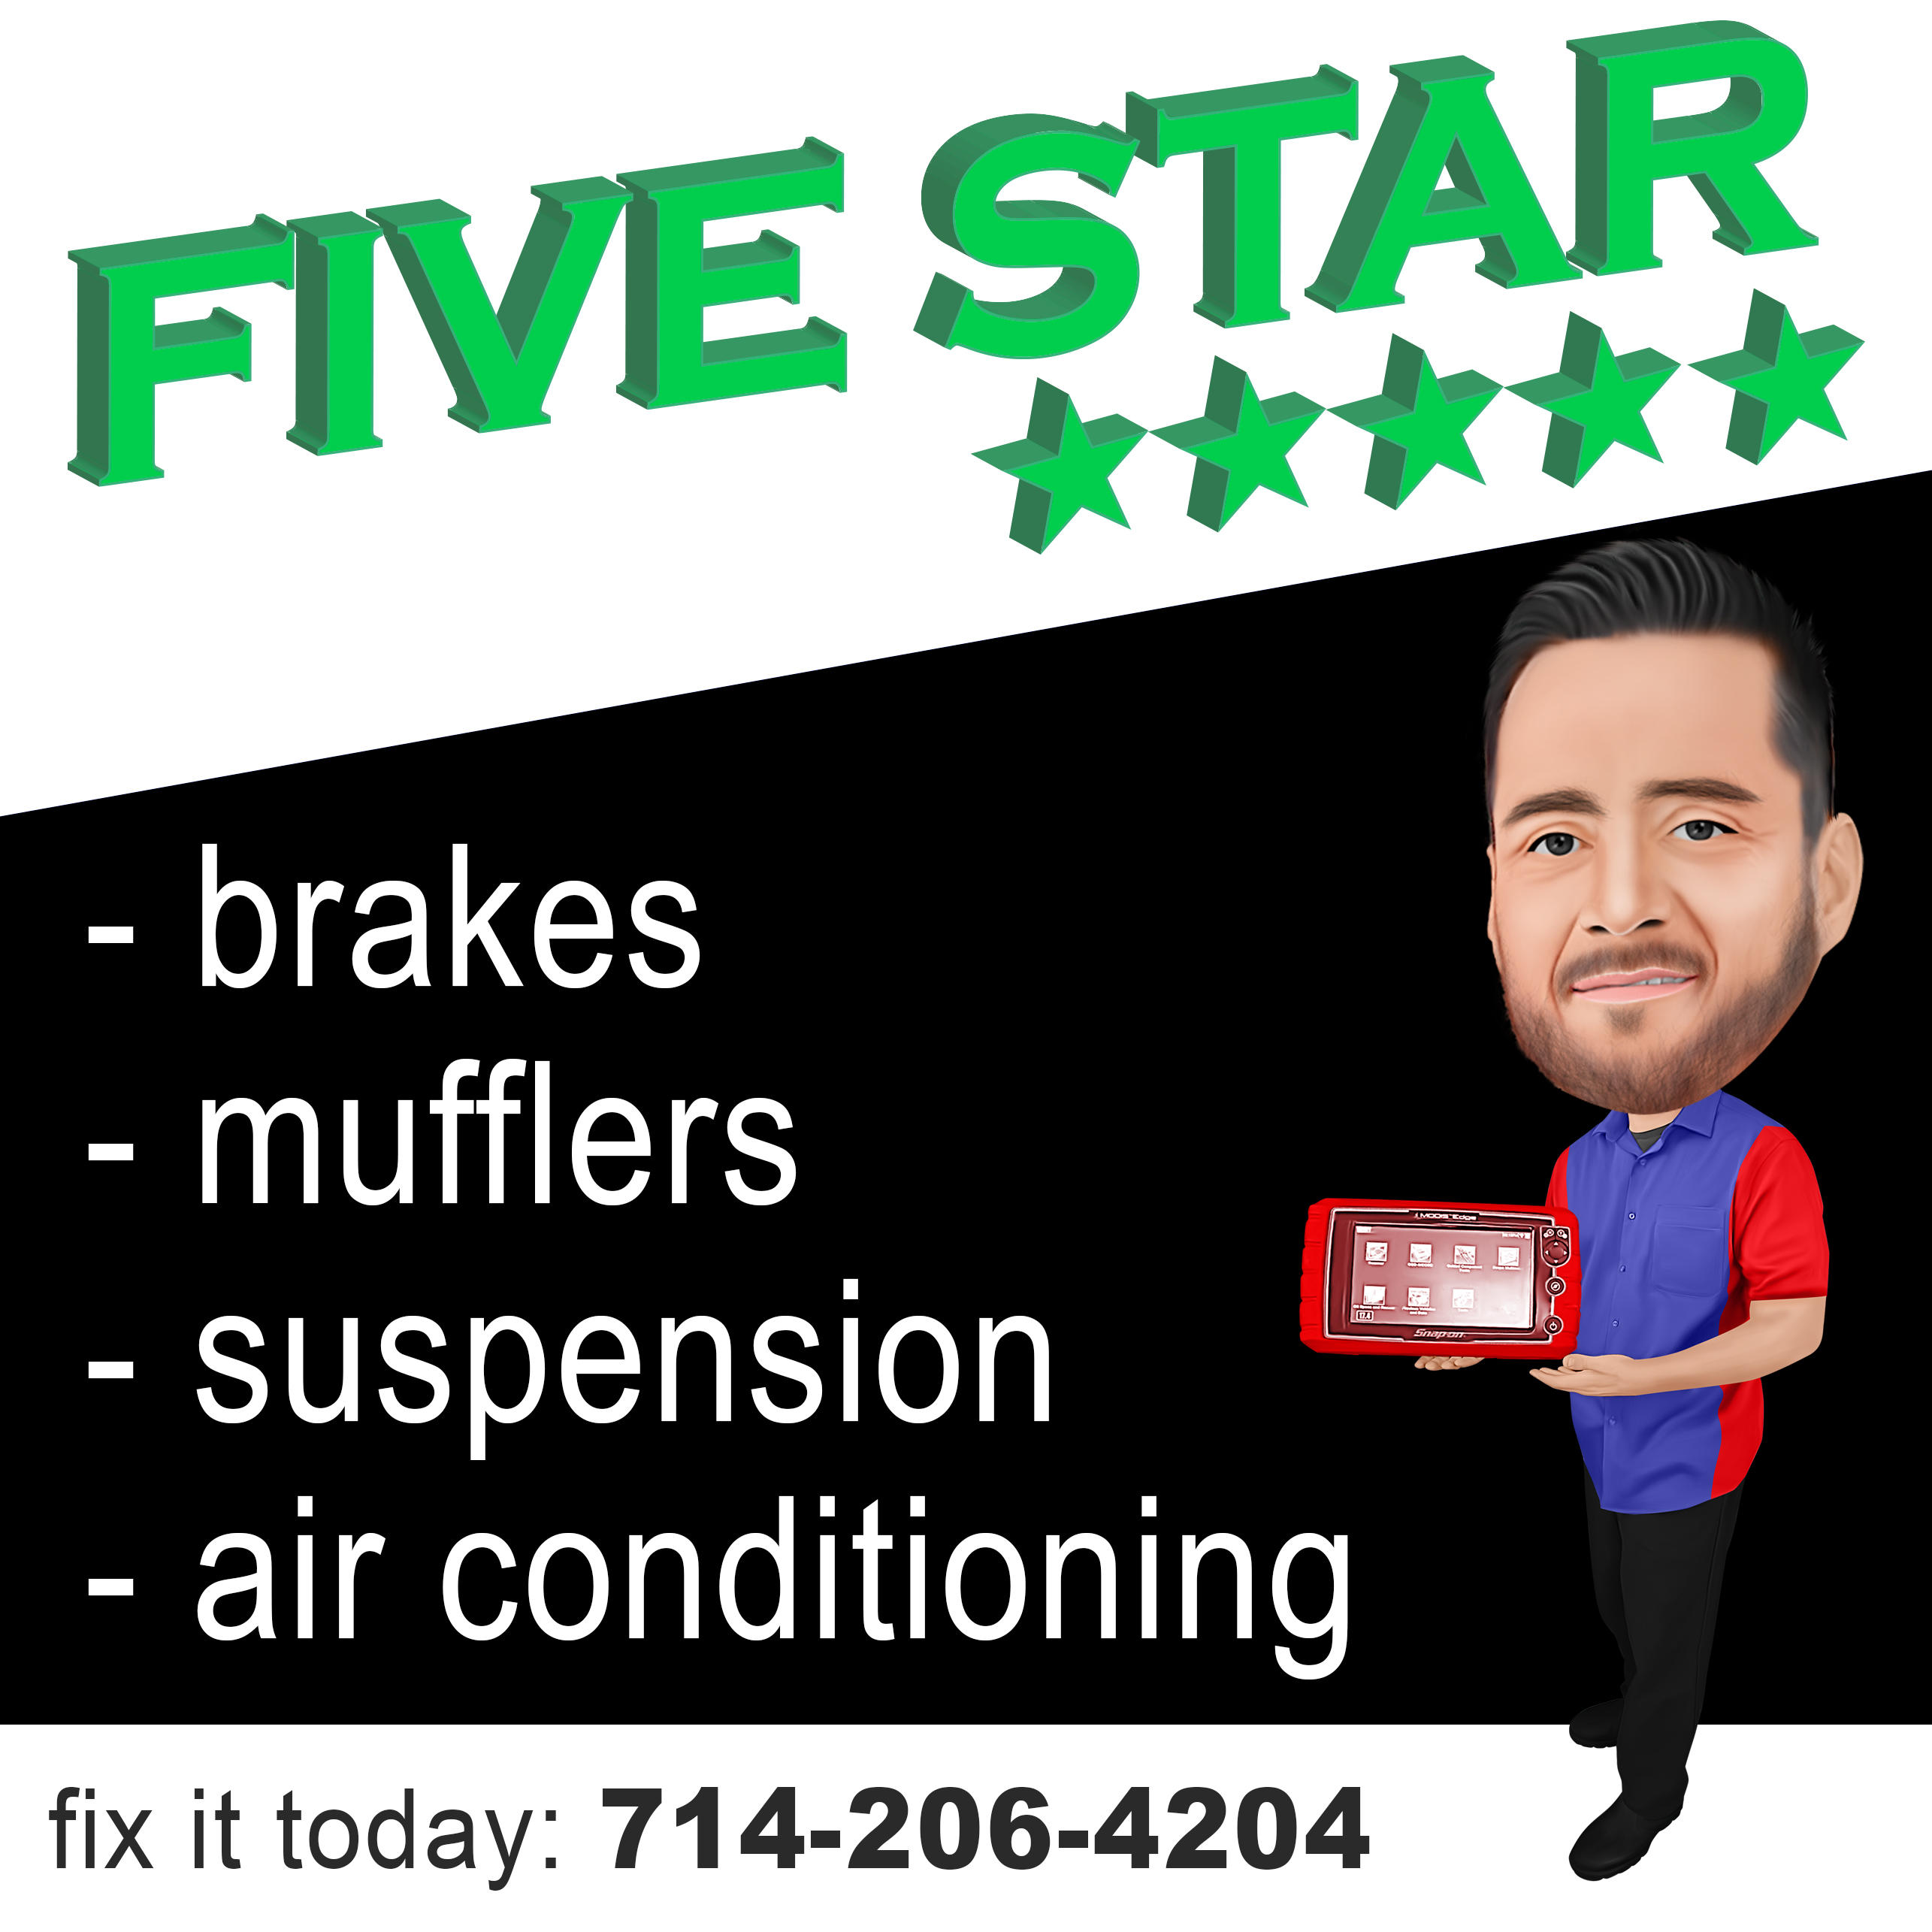 Five Star Auto & Truck Repair image 6